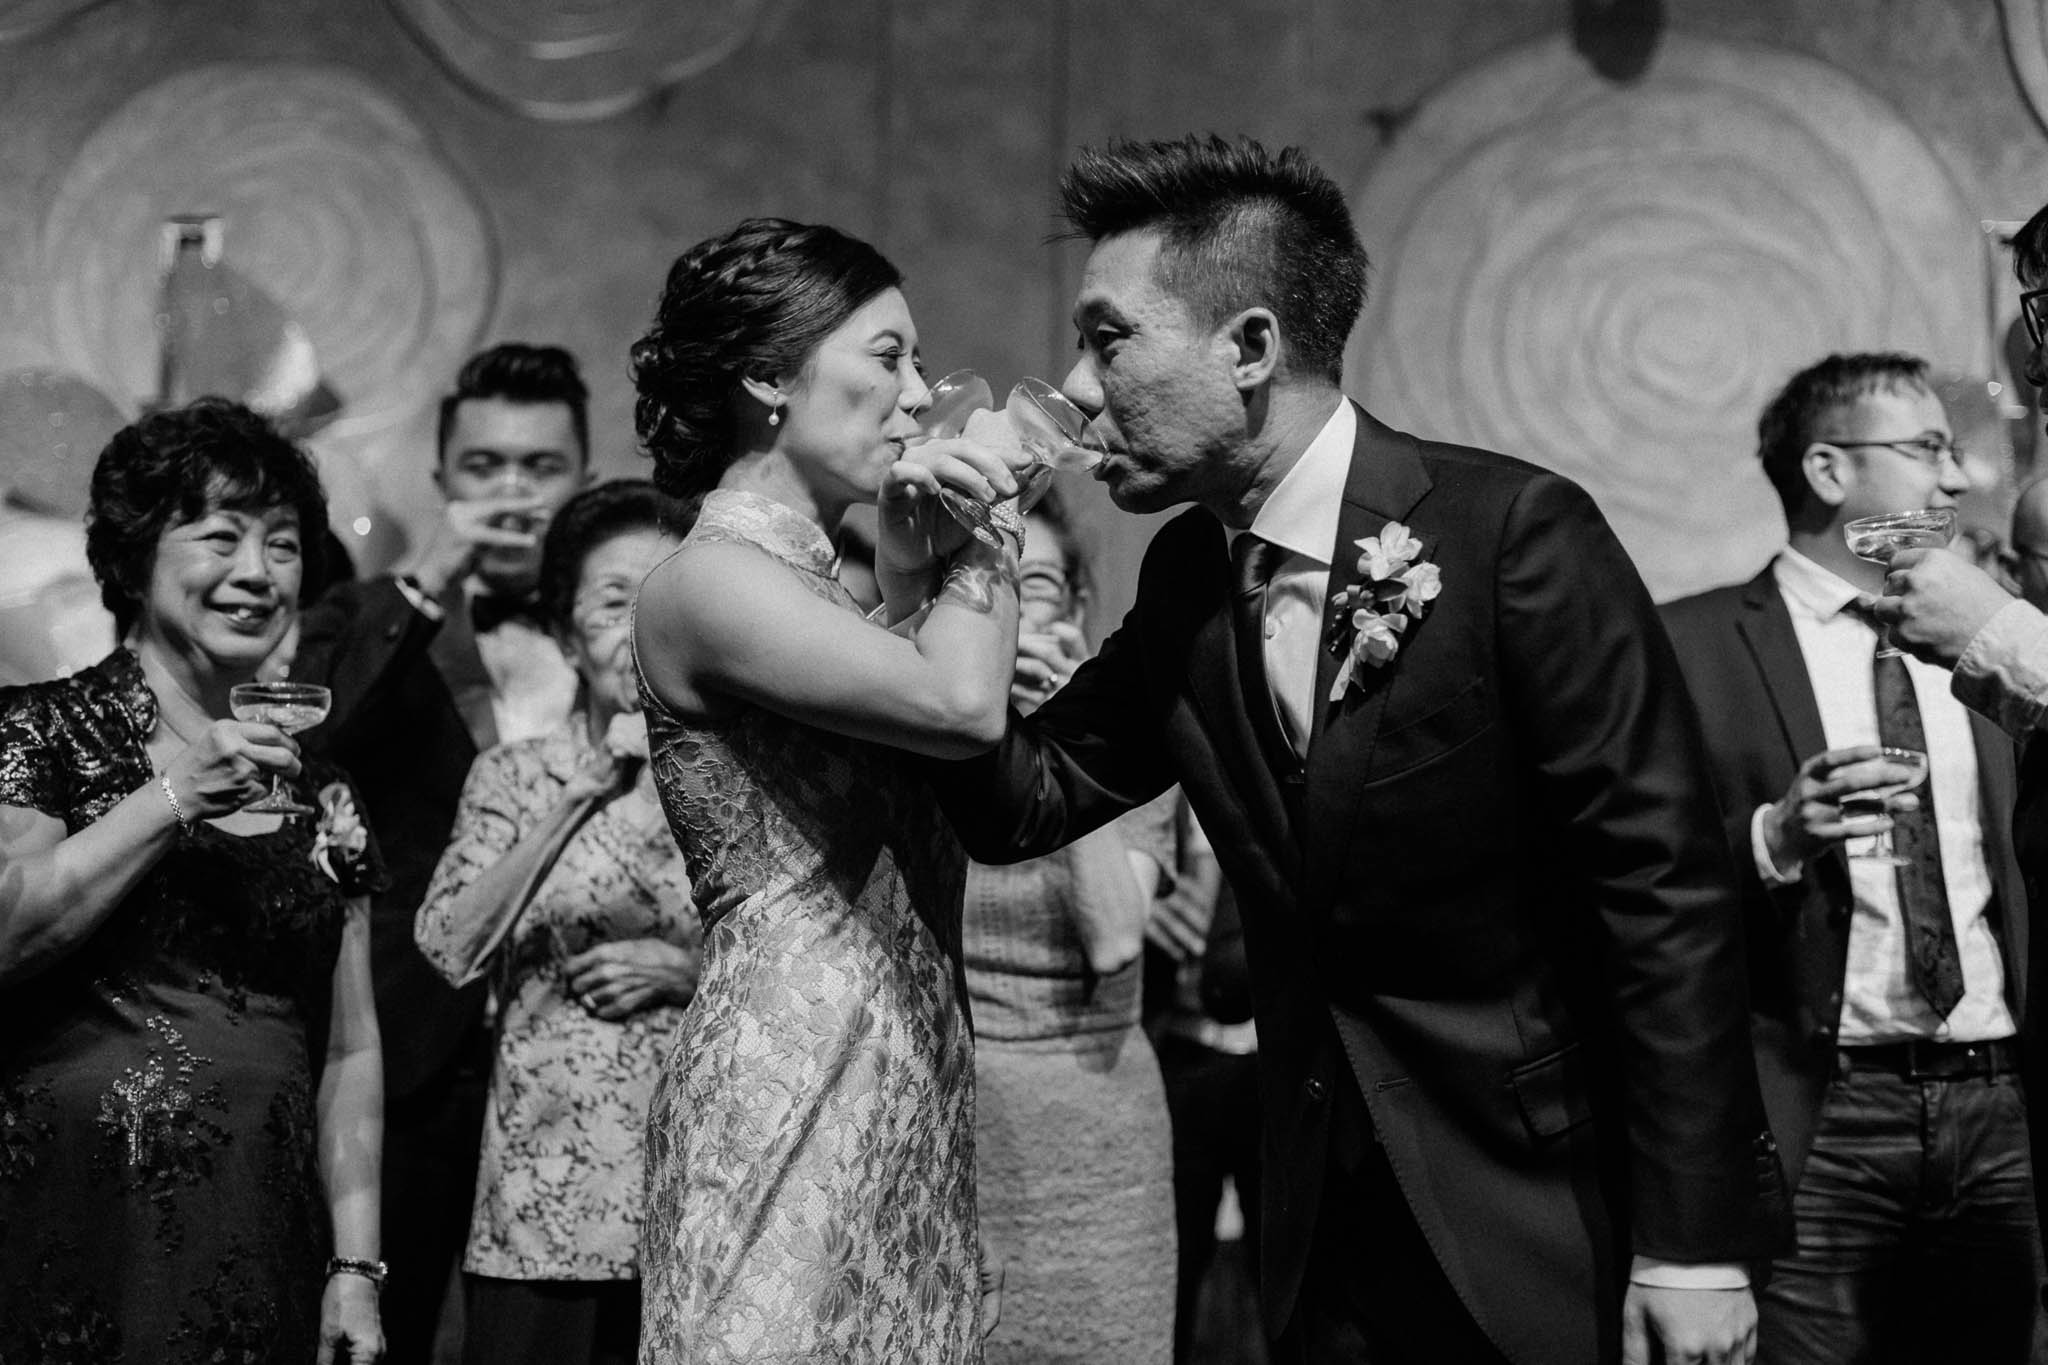 singapore-wedding-photographer-we-made-these-2016-selects-104.jpg